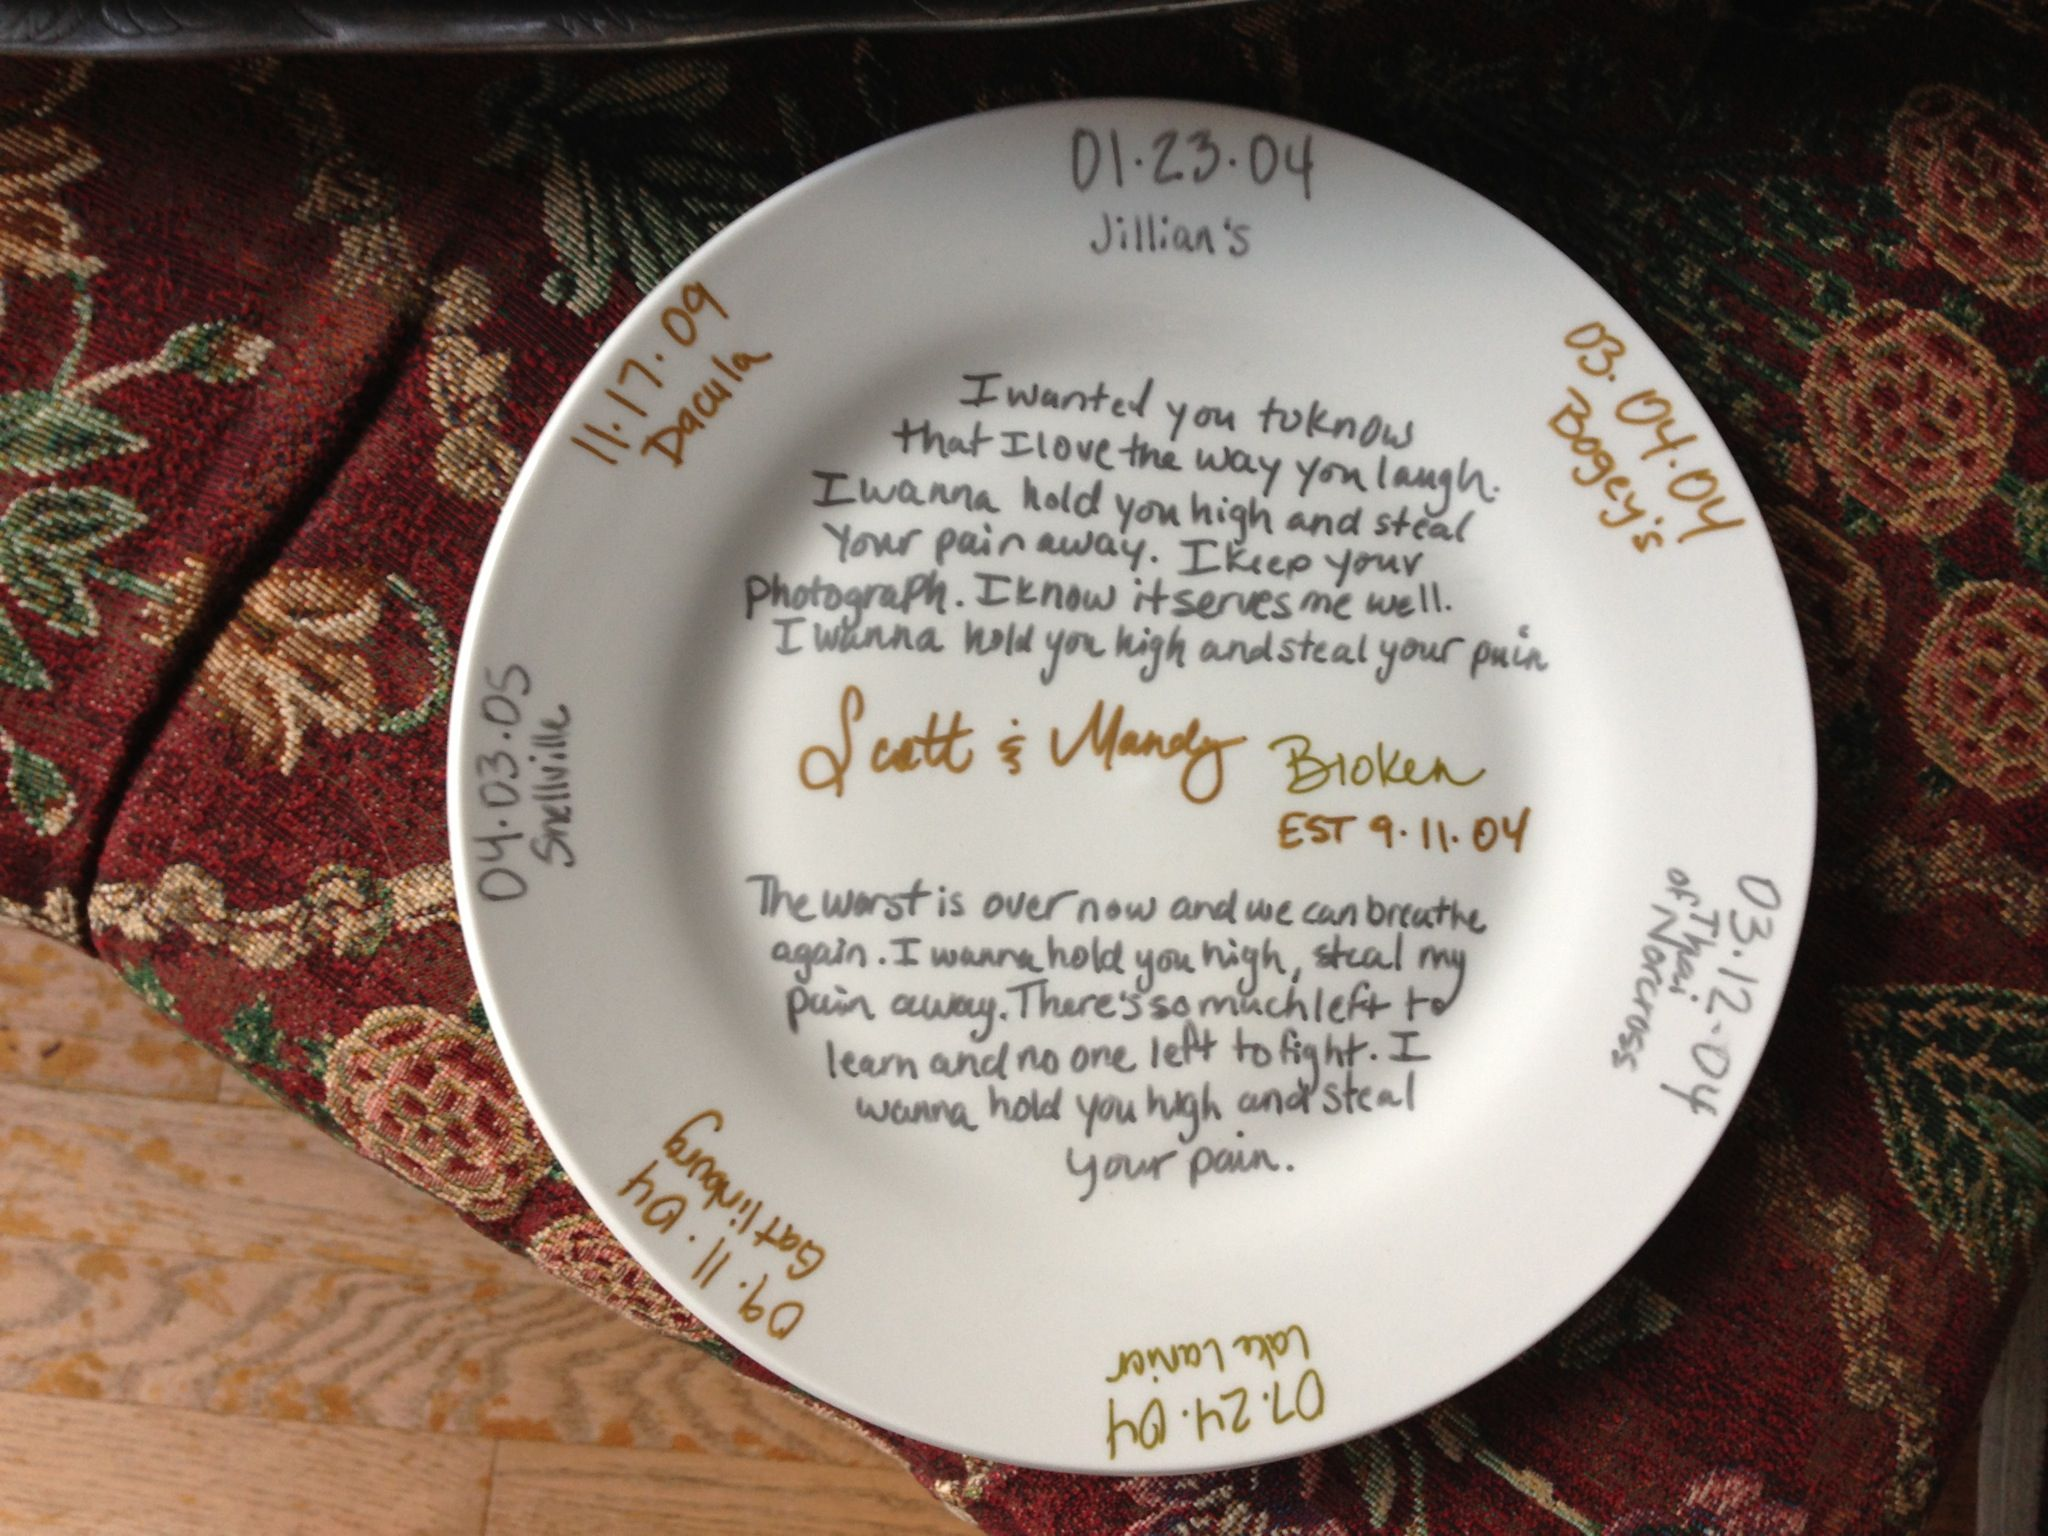 My 9th Anniversary Pottery For The Hubby He Loved It Marriage Anniversary Gifts Wedding Anniversary Gifts Best Anniversary Gifts